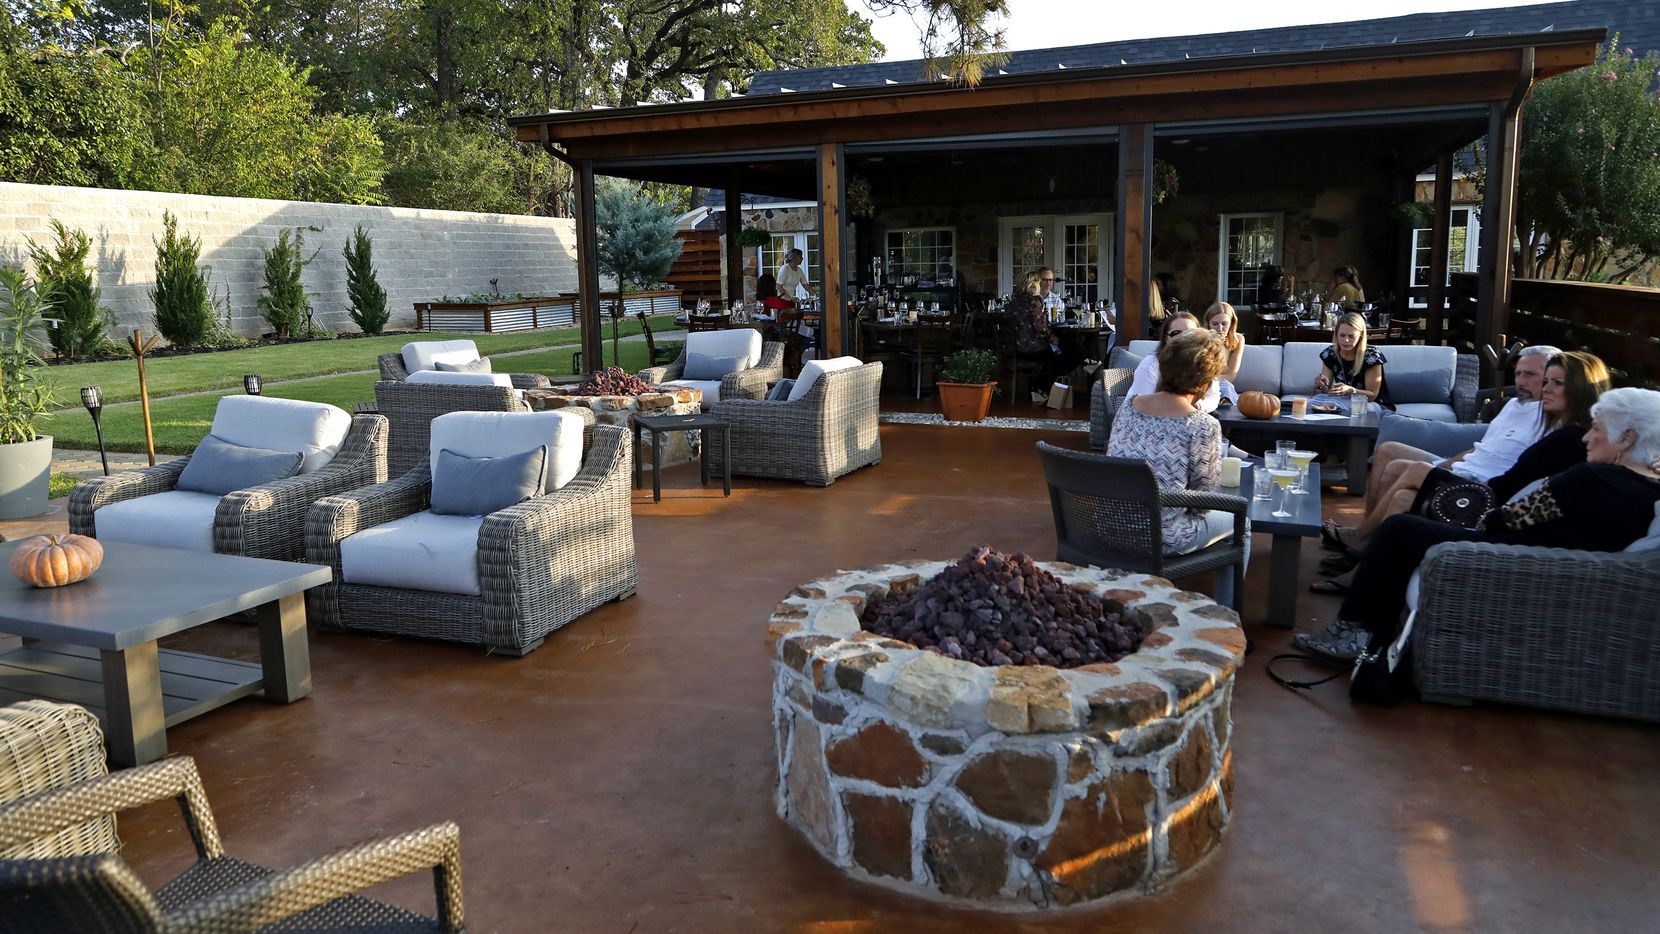 The patio area at the Stone House Restaurant in Colleyville.